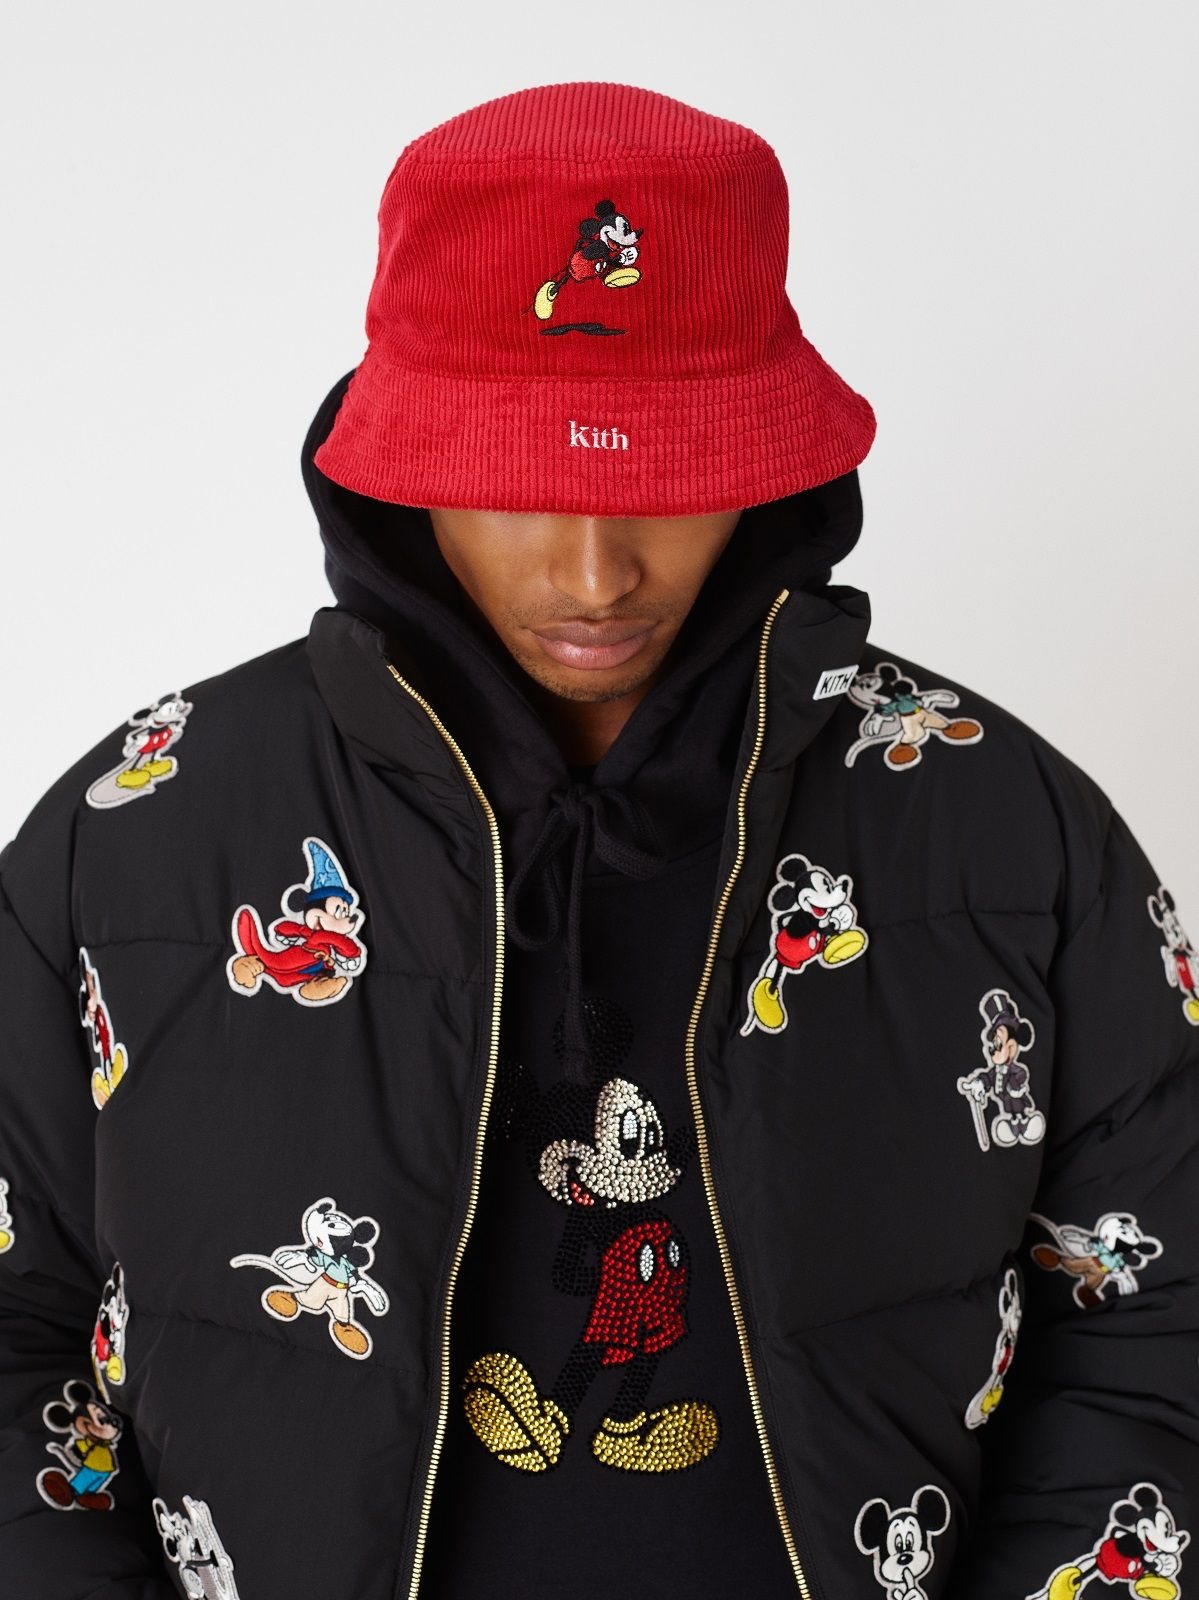 The Disney x KITH Collection for Mickey Mouse's 90th Anniversary